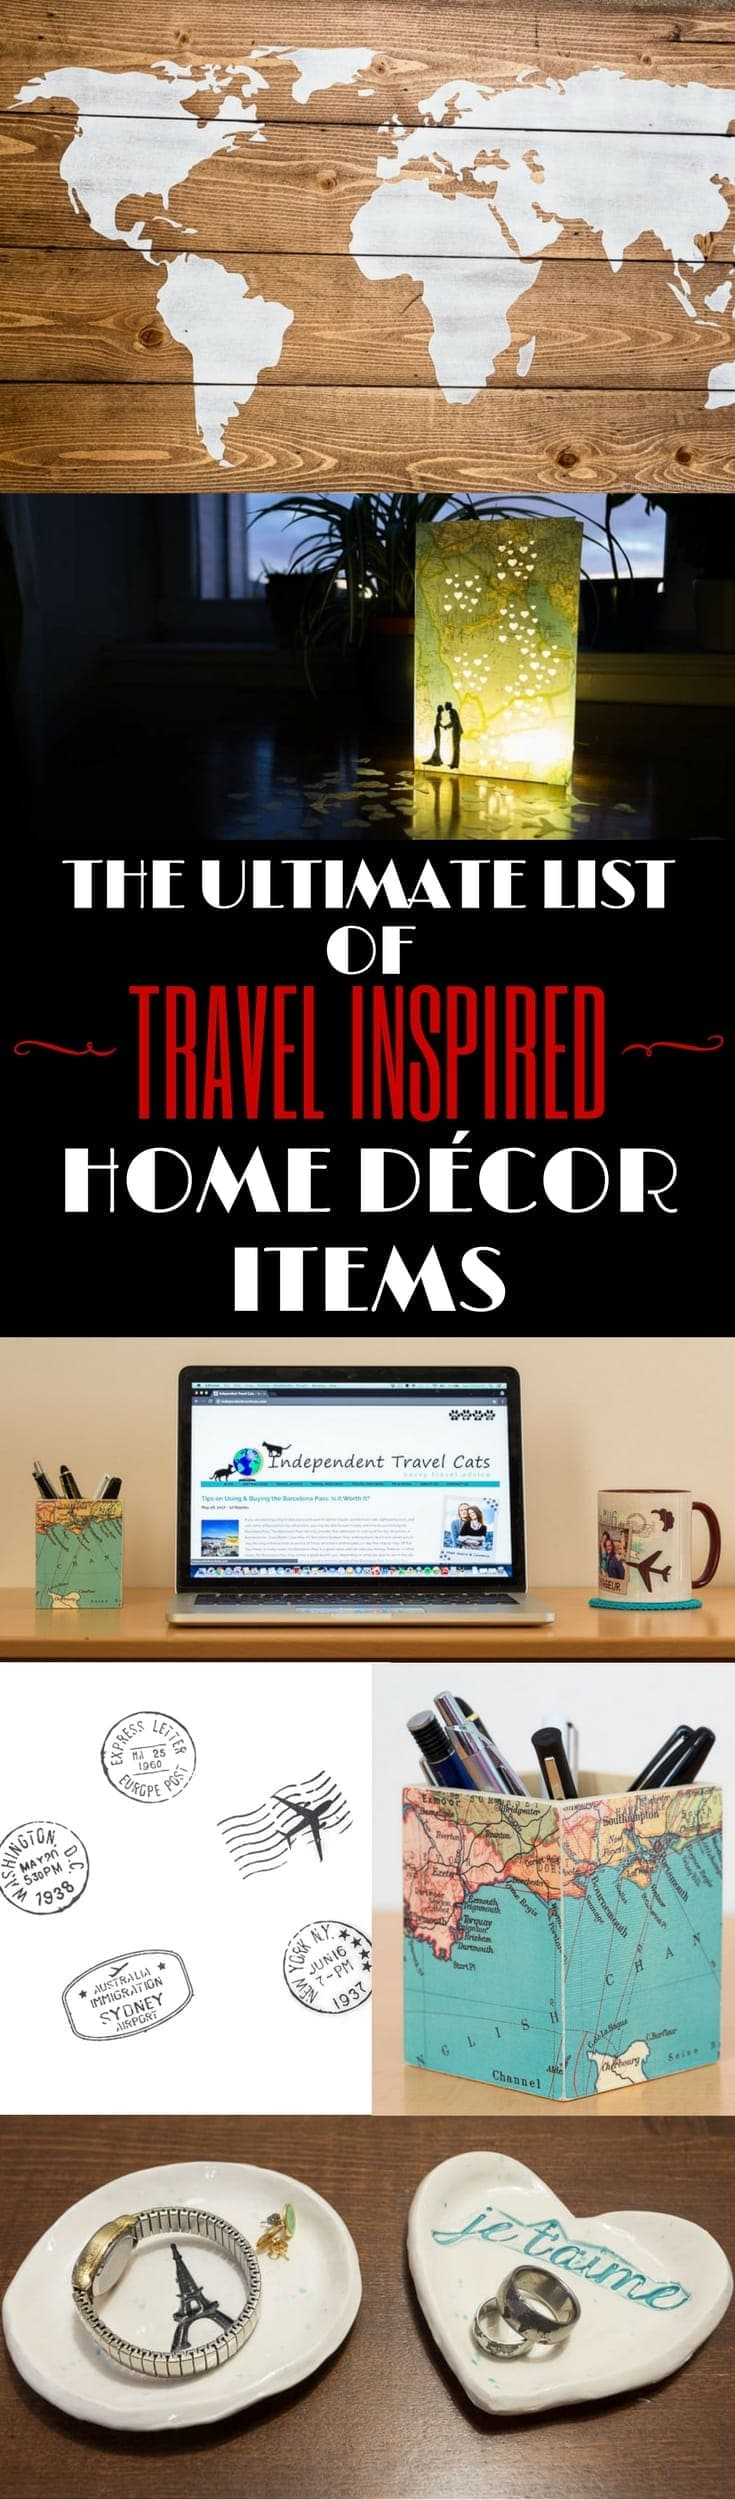 Ultimate list of travel themed home decor items for every room of your house or for a gift for a special traveler. All these travel inspired pieces are handmade and reviewed. List includes shower curtains, rugs, wall art, blankets, pillows, candles, coffee mugs, lampshades, and much more!